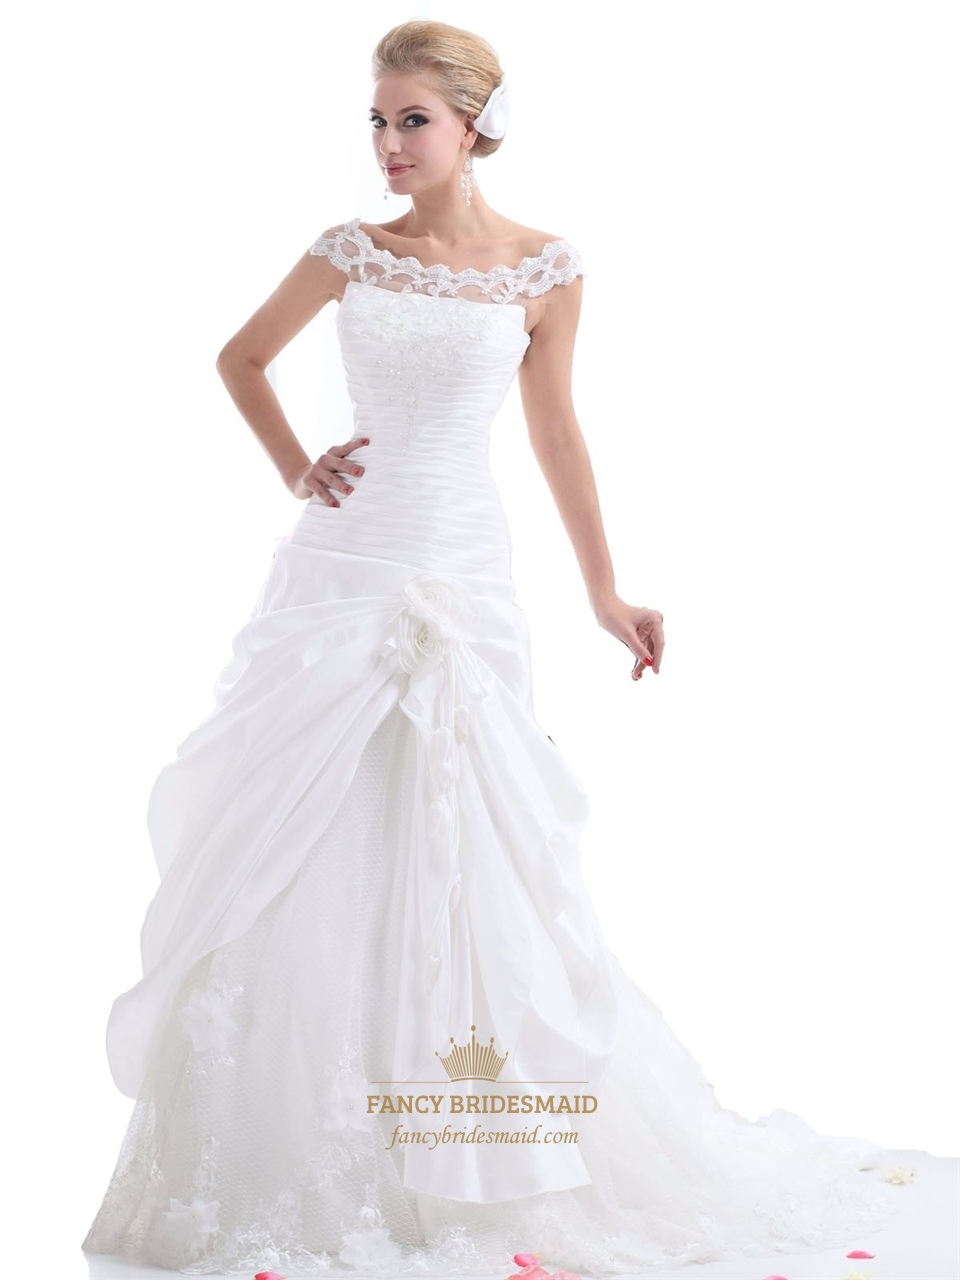 Gemütlich Draped Wedding Dress Galerie - Brautkleider Ideen ...